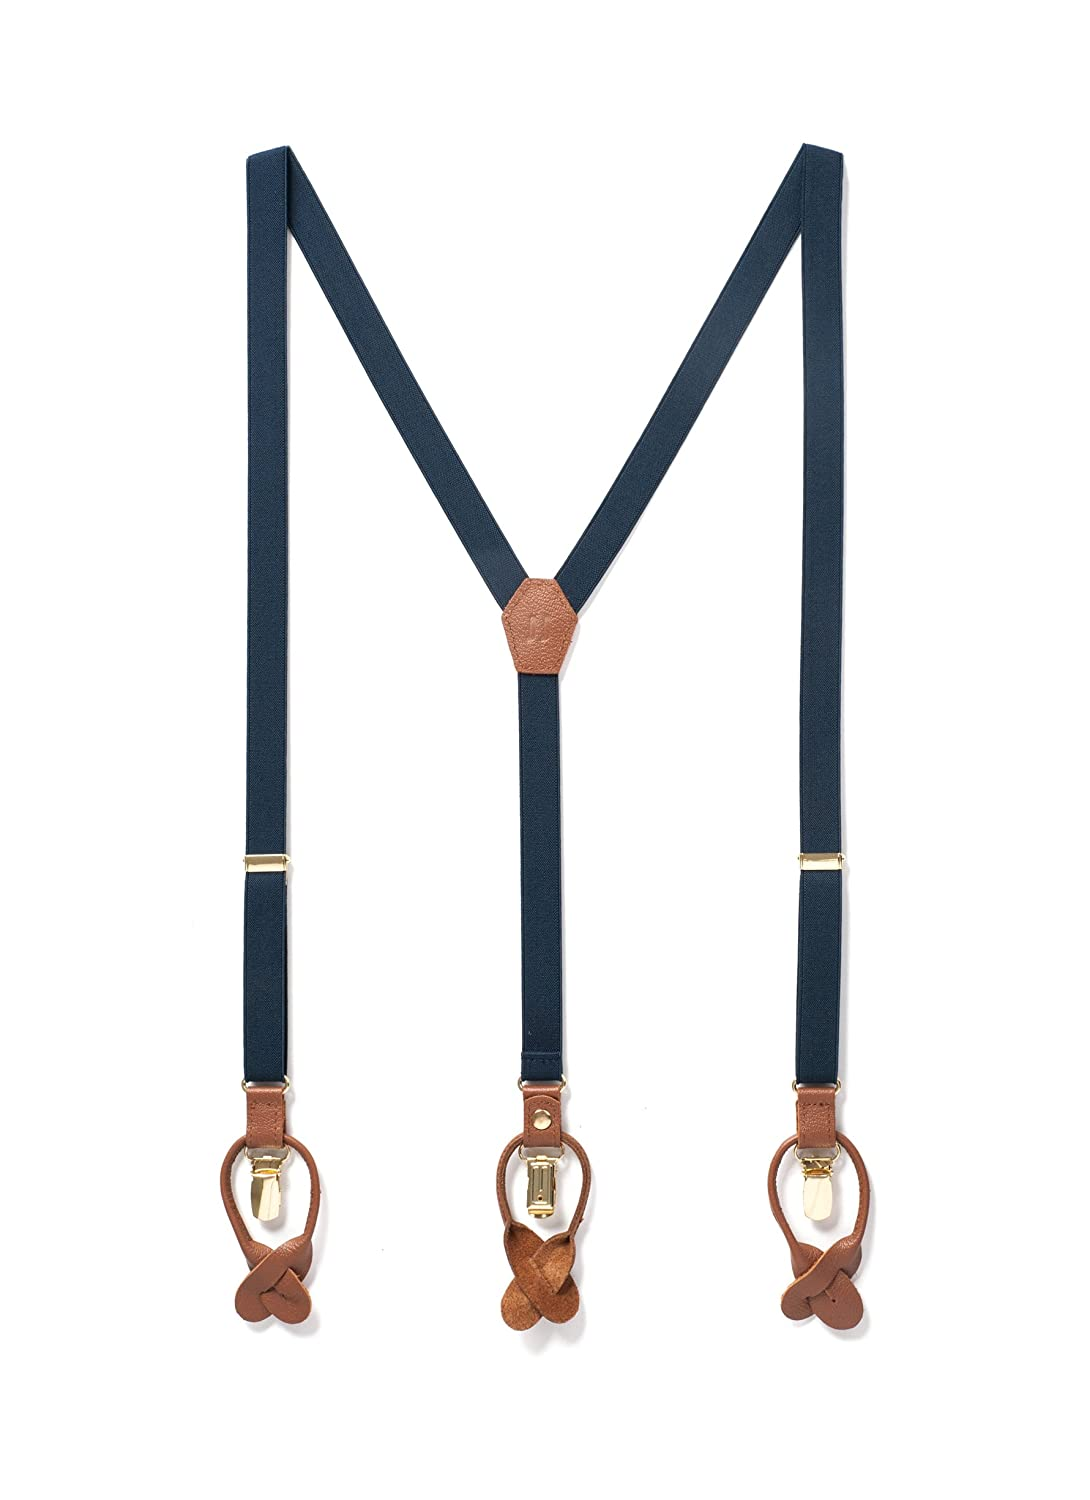 8a524b4d5037 PREMIUM QUALITY DOUBLE CLIP SUSPENDERS – These classy navy blue and tan  leather suspenders for men are timeless. Our premium quality dual clip on  suspenders ...